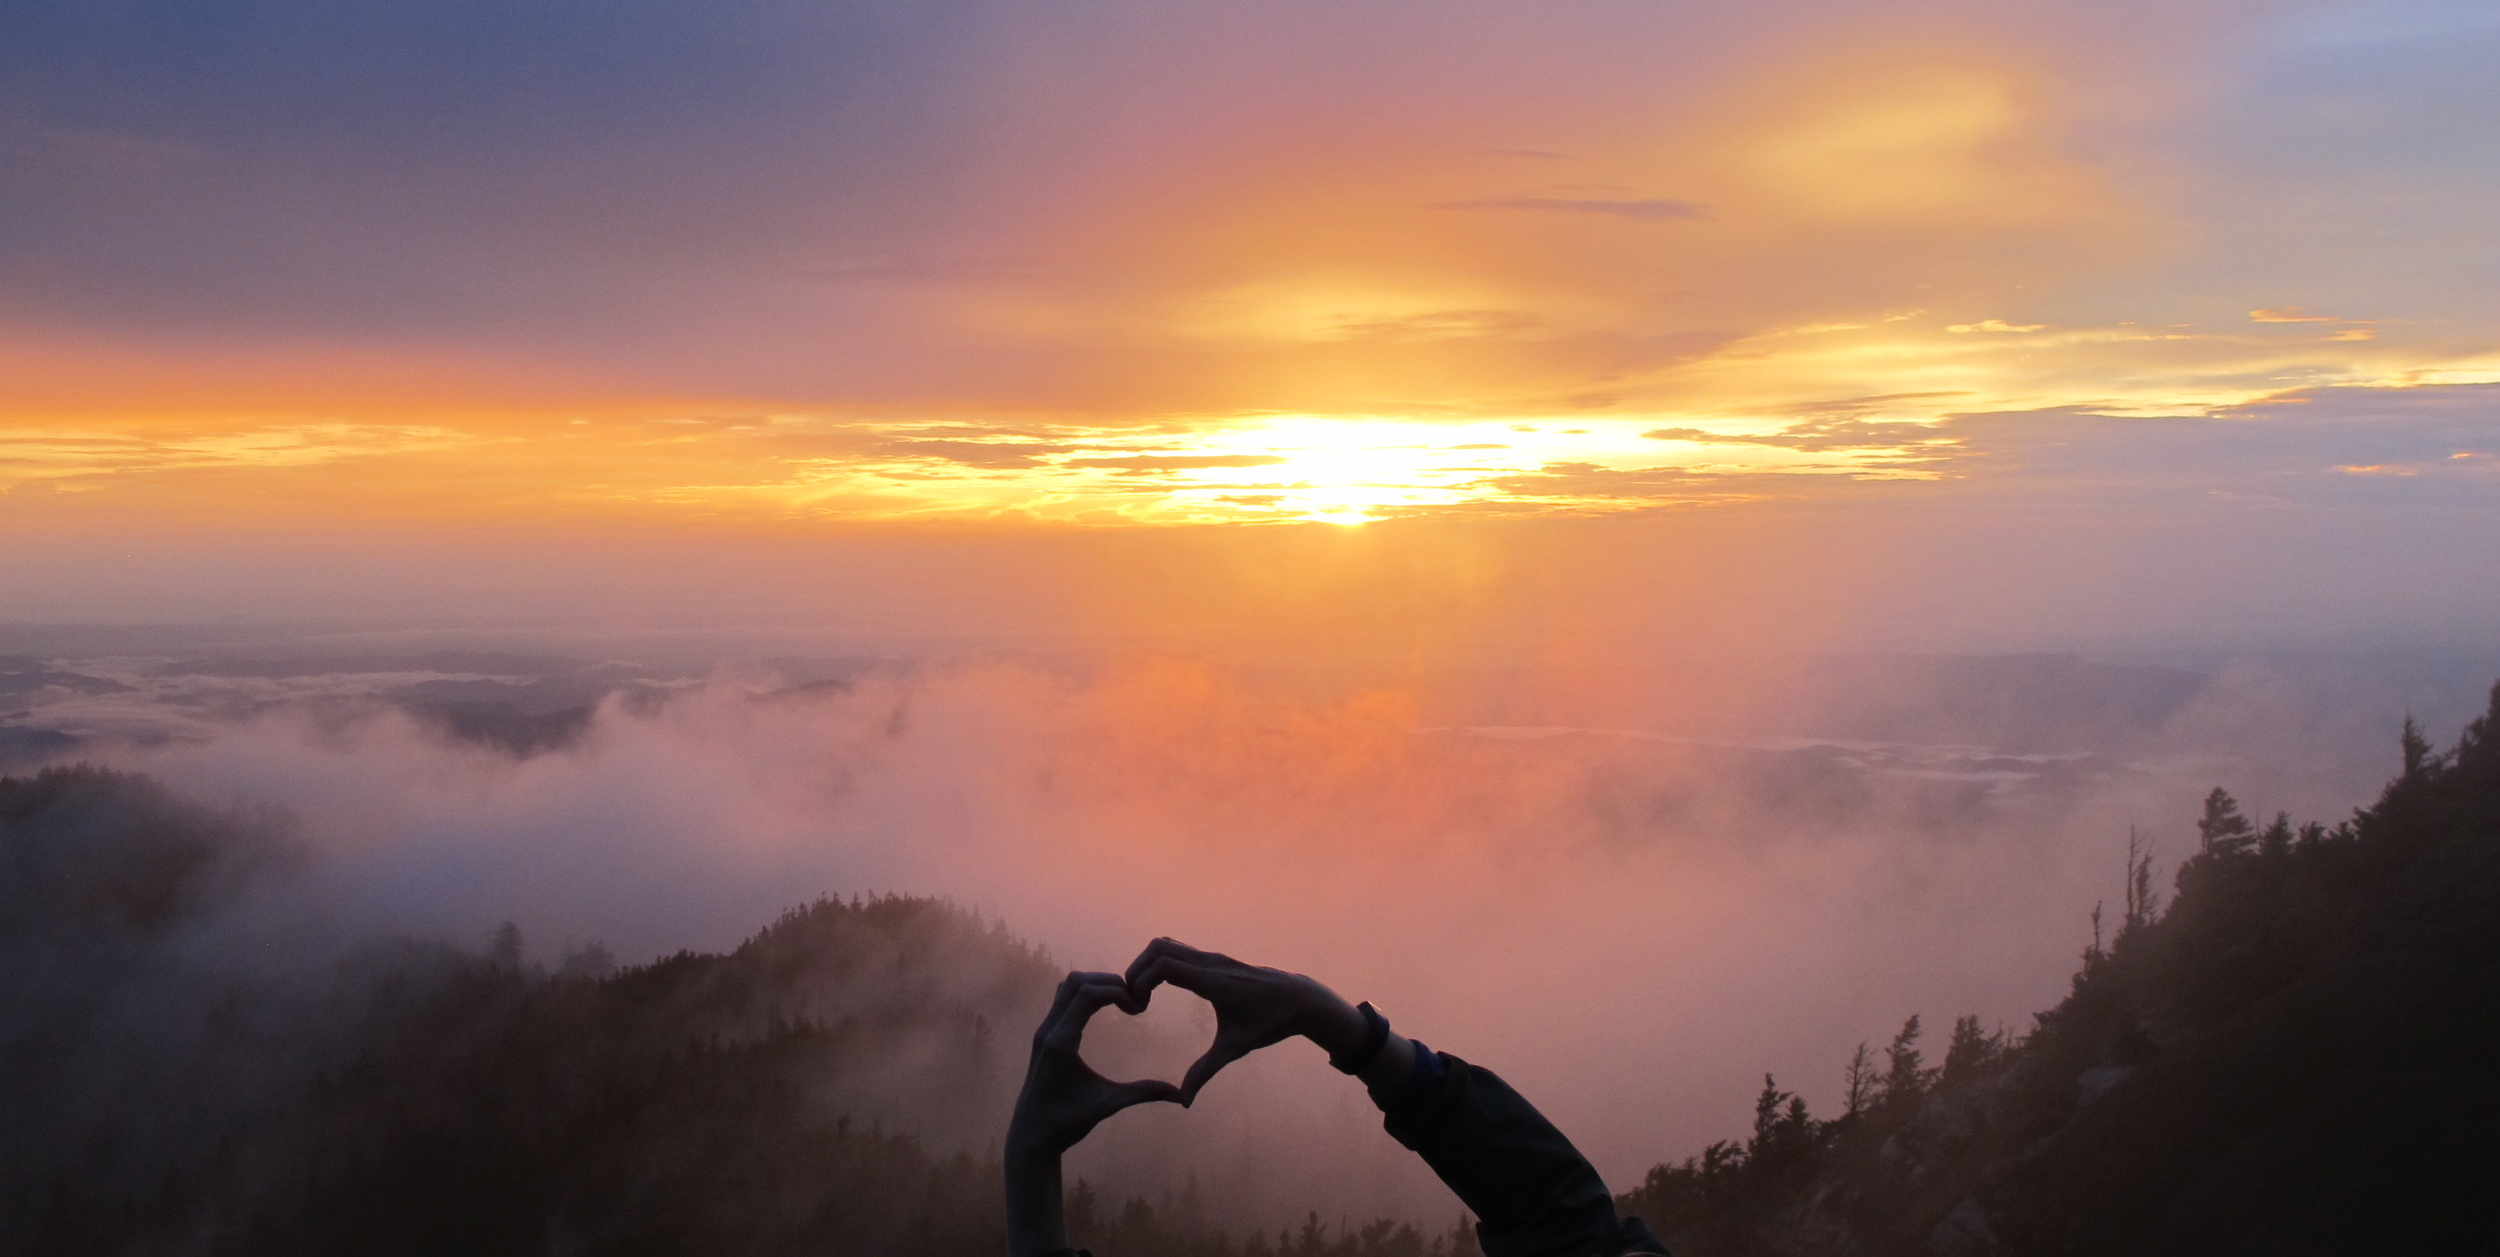 Sunset in the Smokies; Mt. LeConte